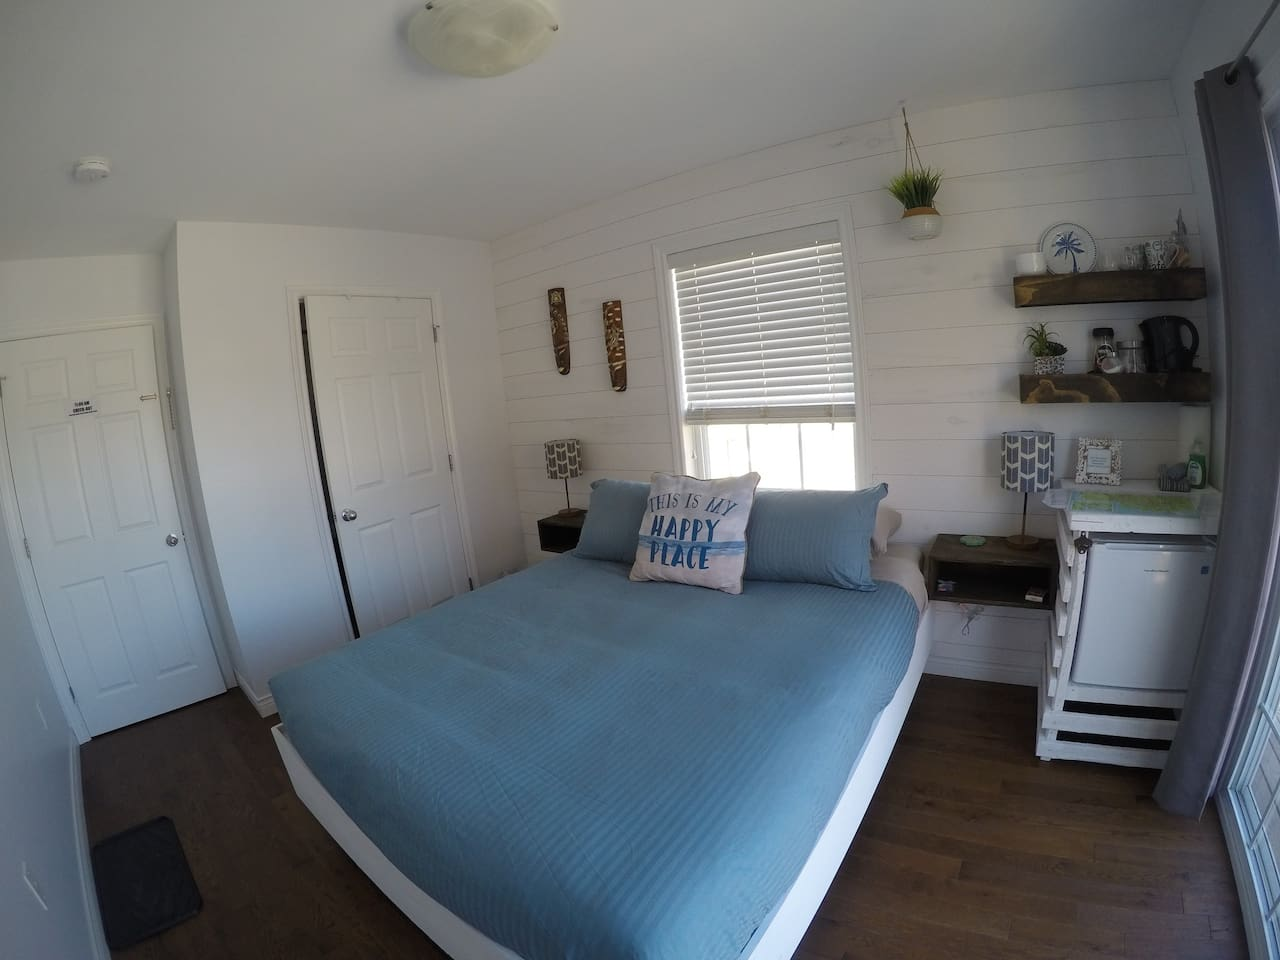 This shows your entire private space. Bedroom with en-suite bathroom and private double locked door on the left. Behind the camera is the private deck. This suite is on the second level.